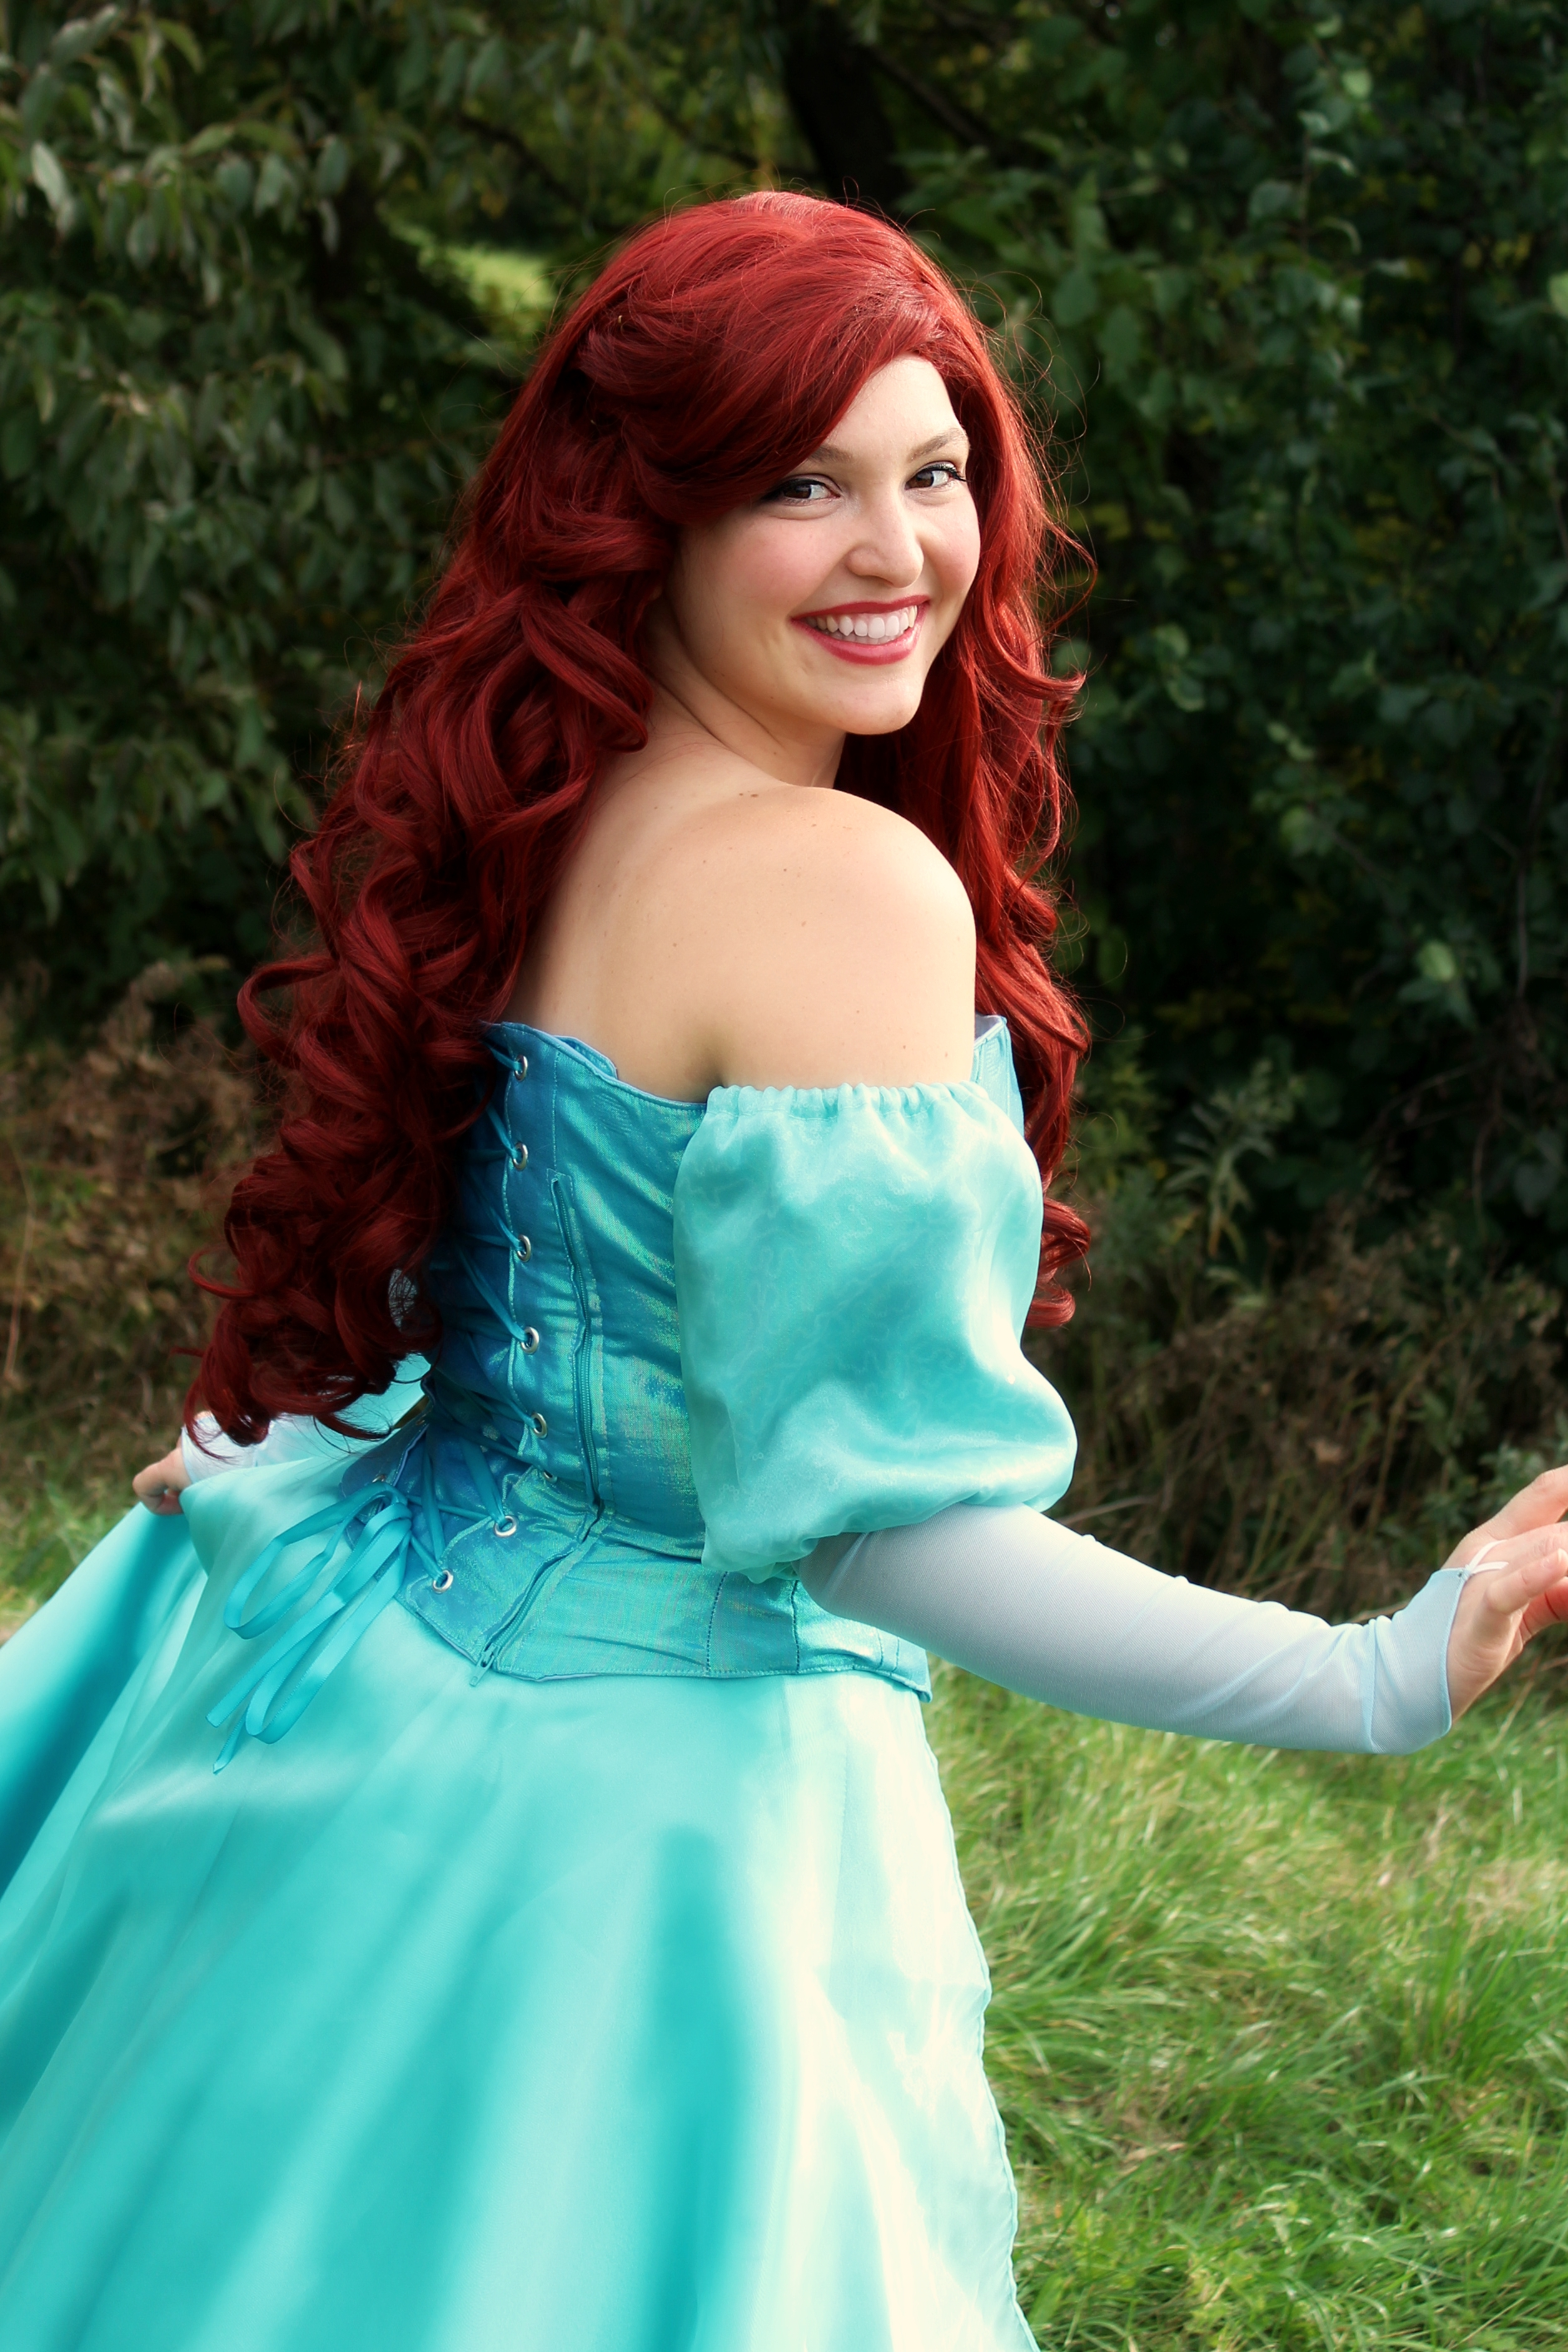 Ariel E 1 Once Upon A Princess